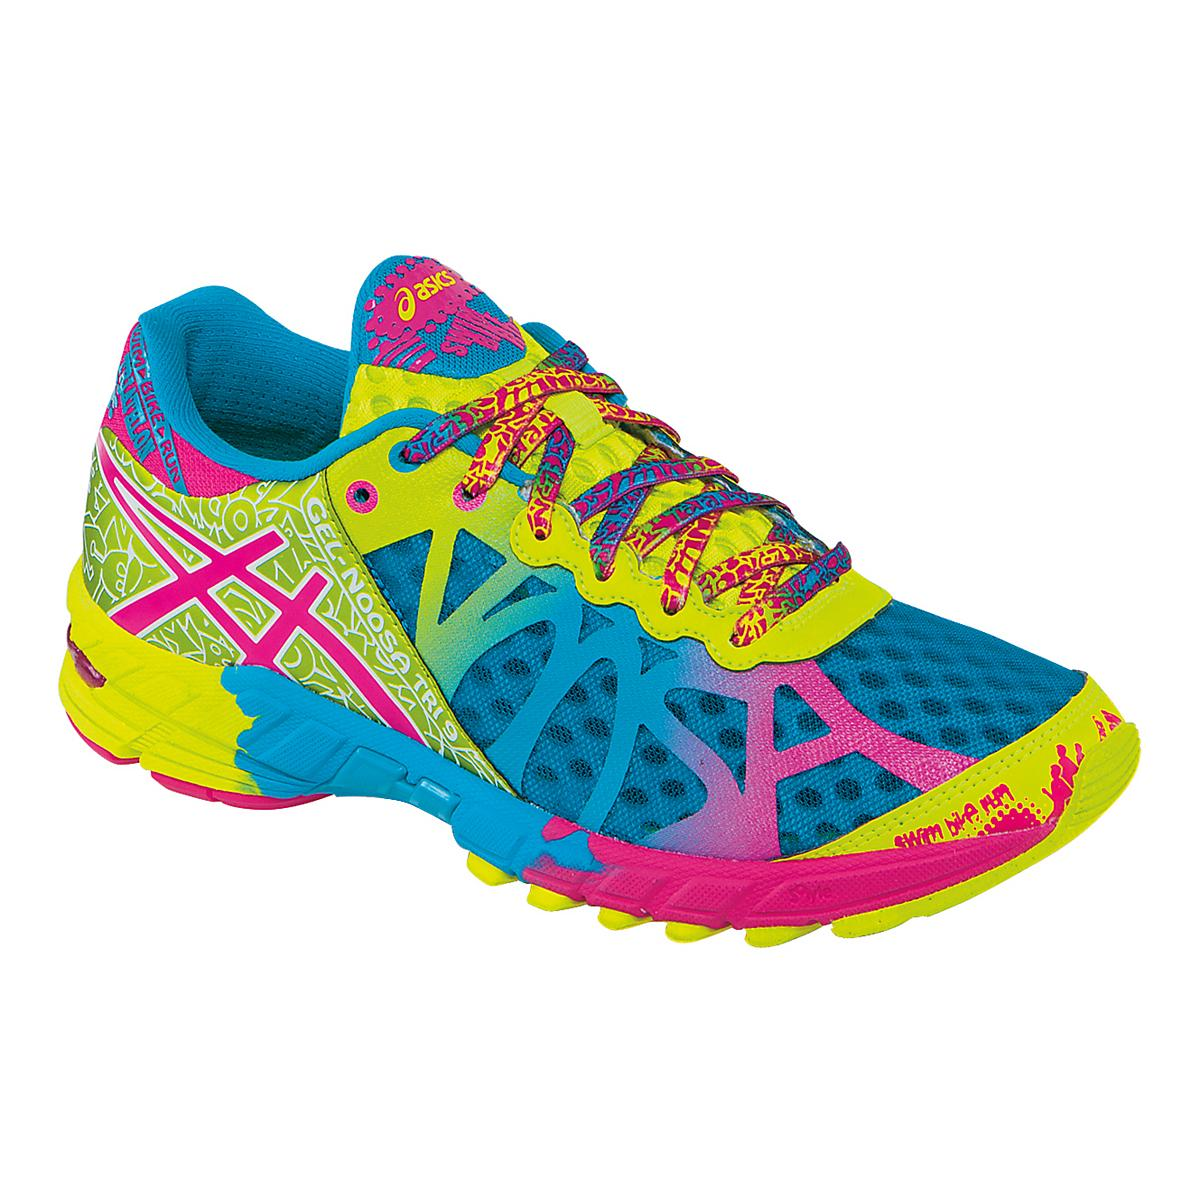 Asics Kids Shoes Online